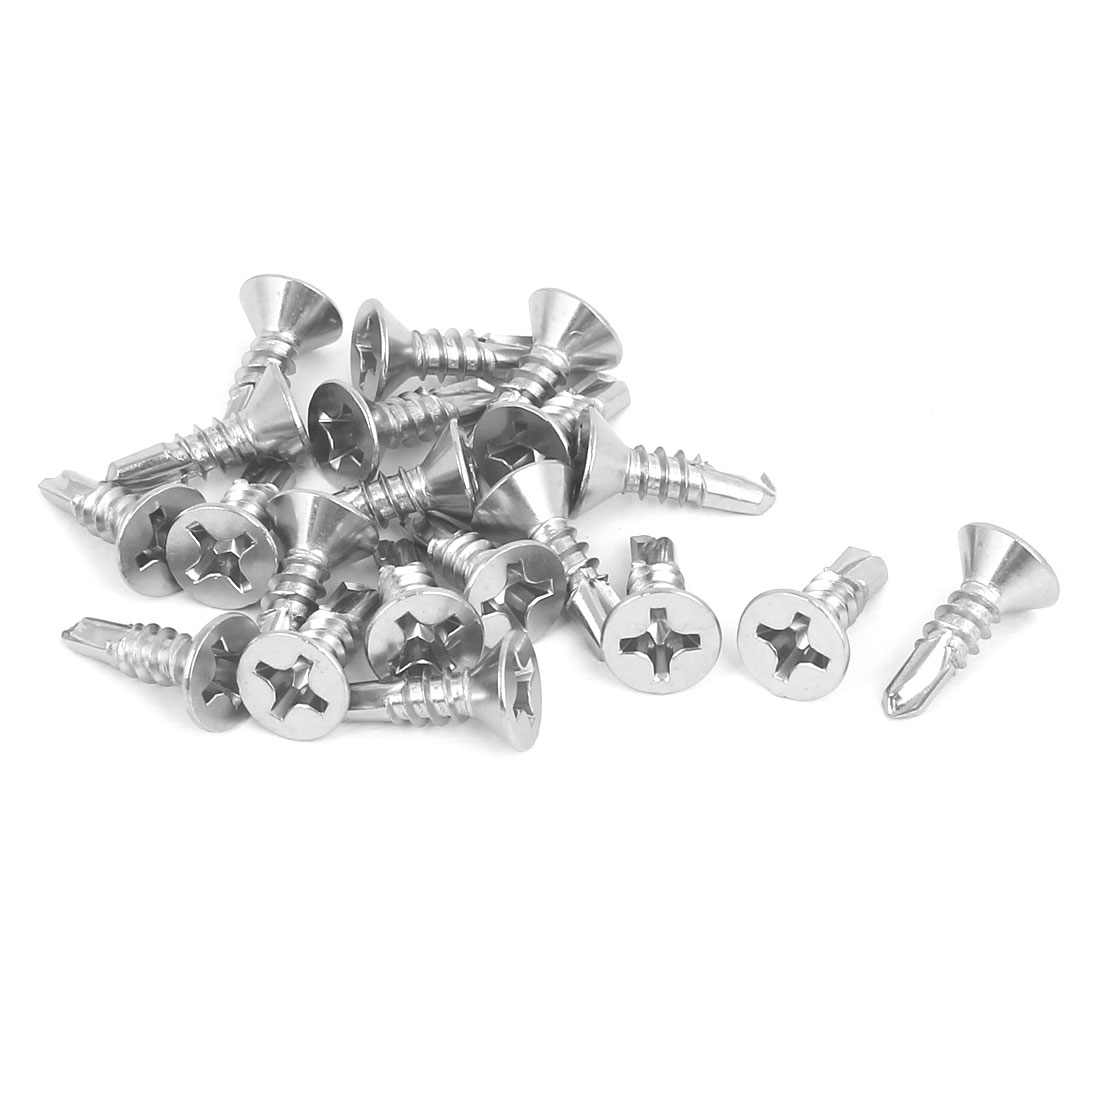 M5.5 x 19mm 410 Stainless Steel Countersunk Head Self Drilling Screws 20 Pcs